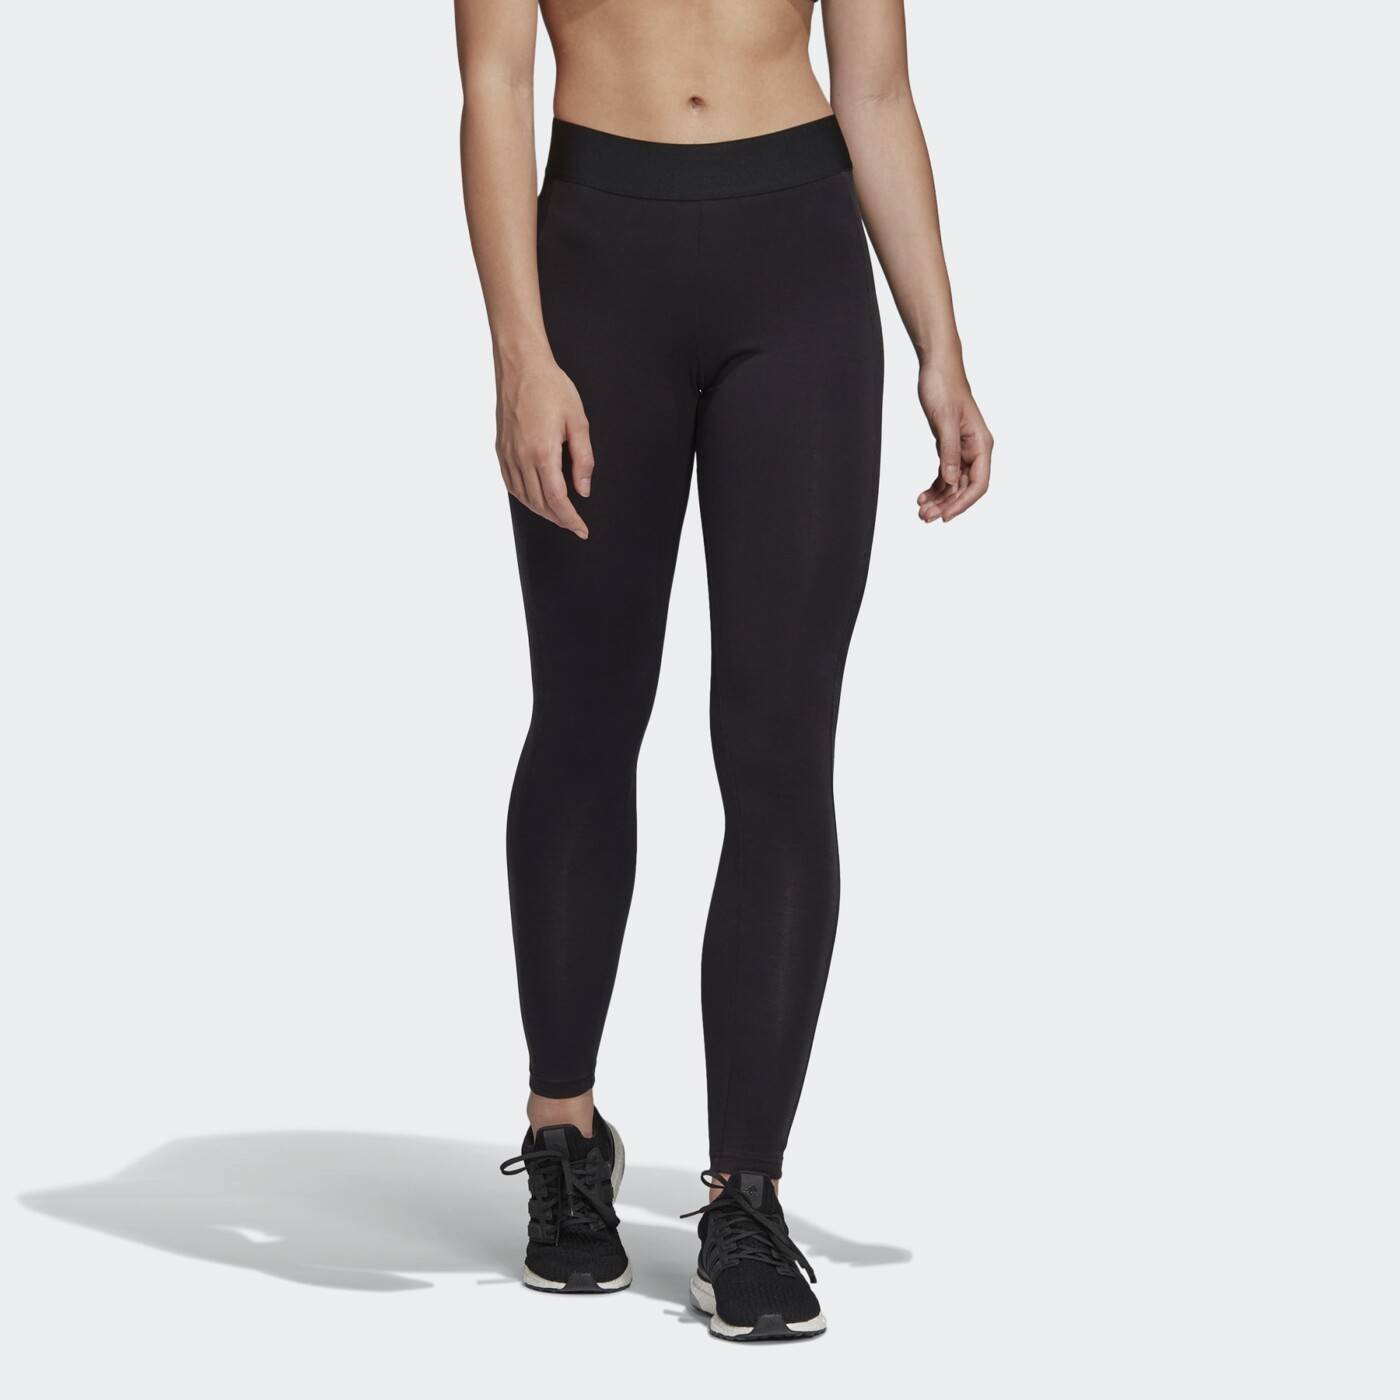 ADIDAS MUST HAVES STACKED LOGO TIGHT - Damen